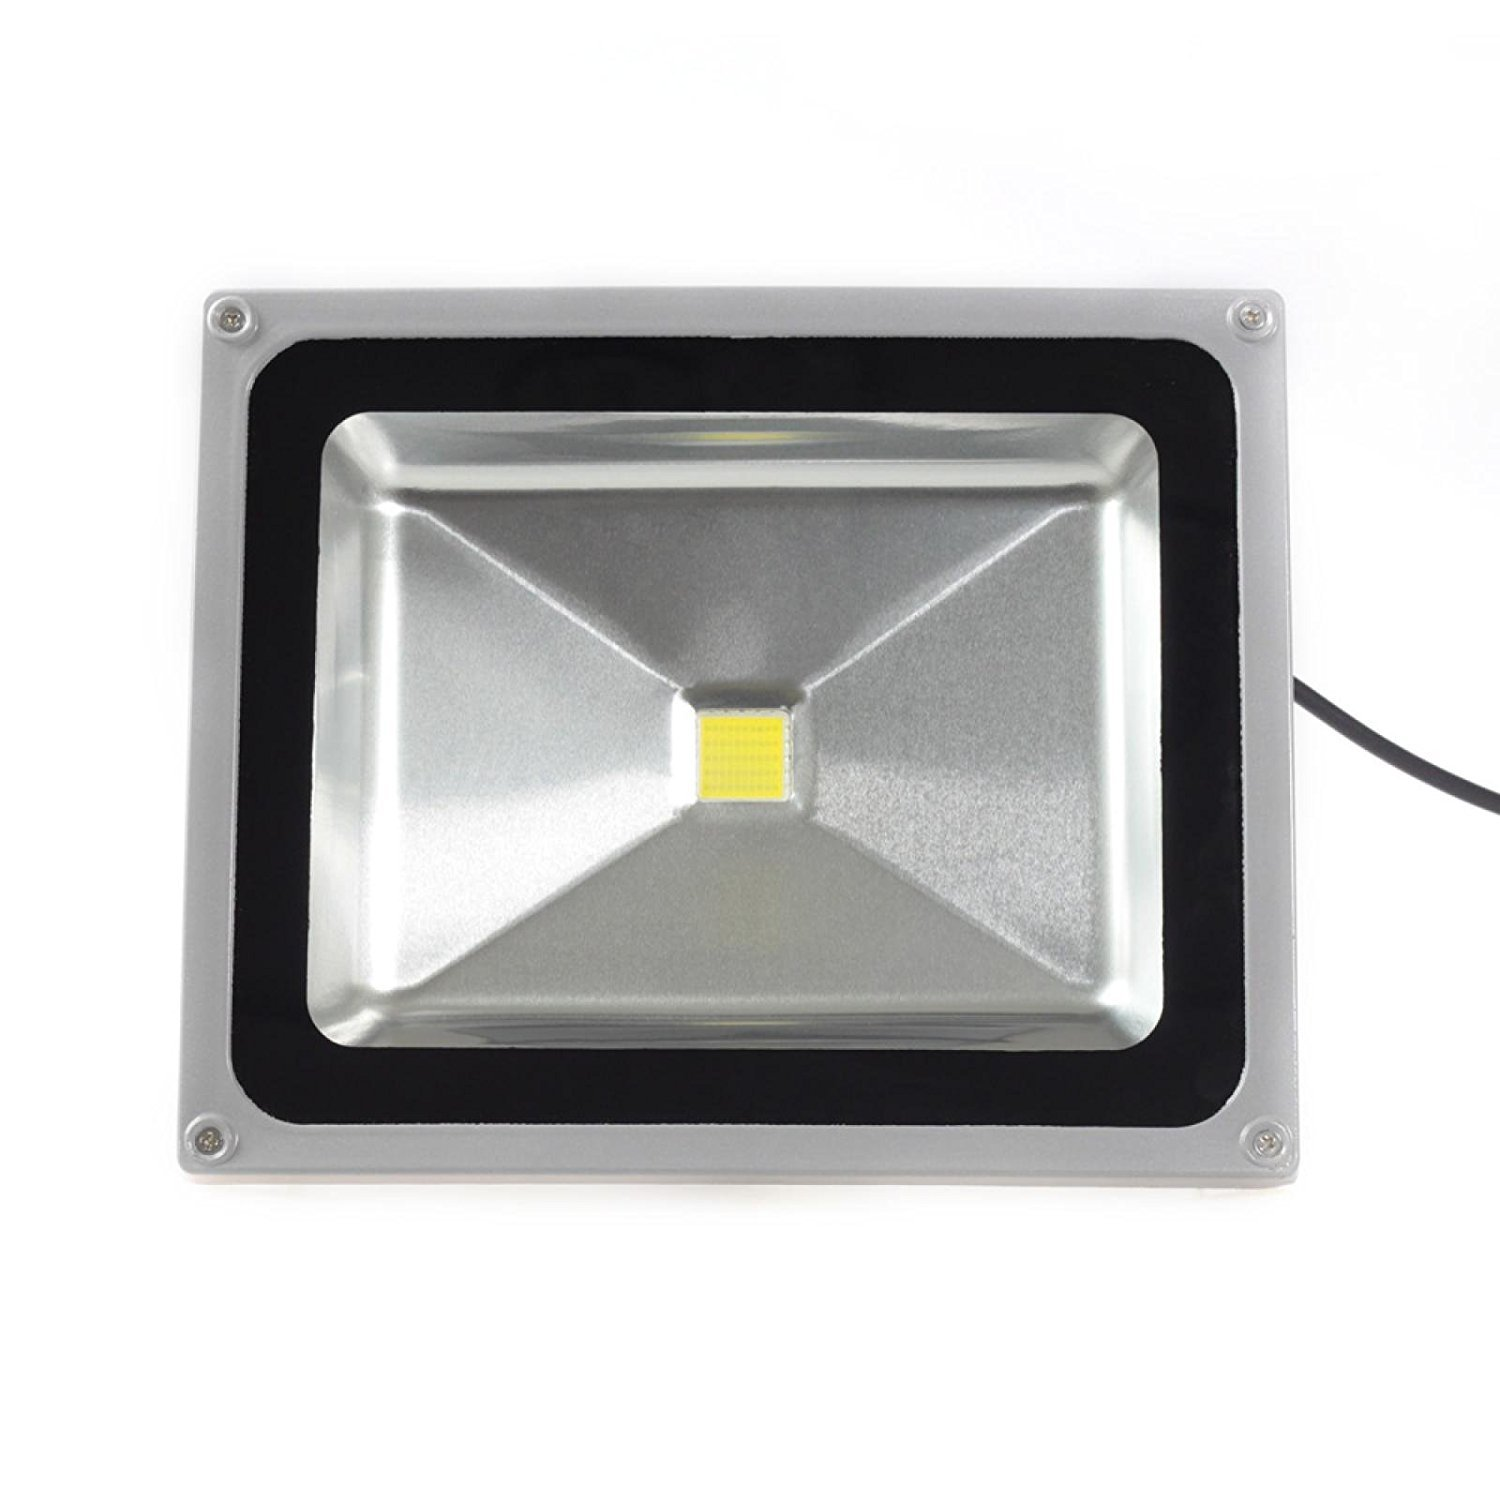 50w led spotlight flood light high power outdoor wall cool white 50w led spotlight flood light high power outdoor wall cool white by loftek amazon arubaitofo Image collections